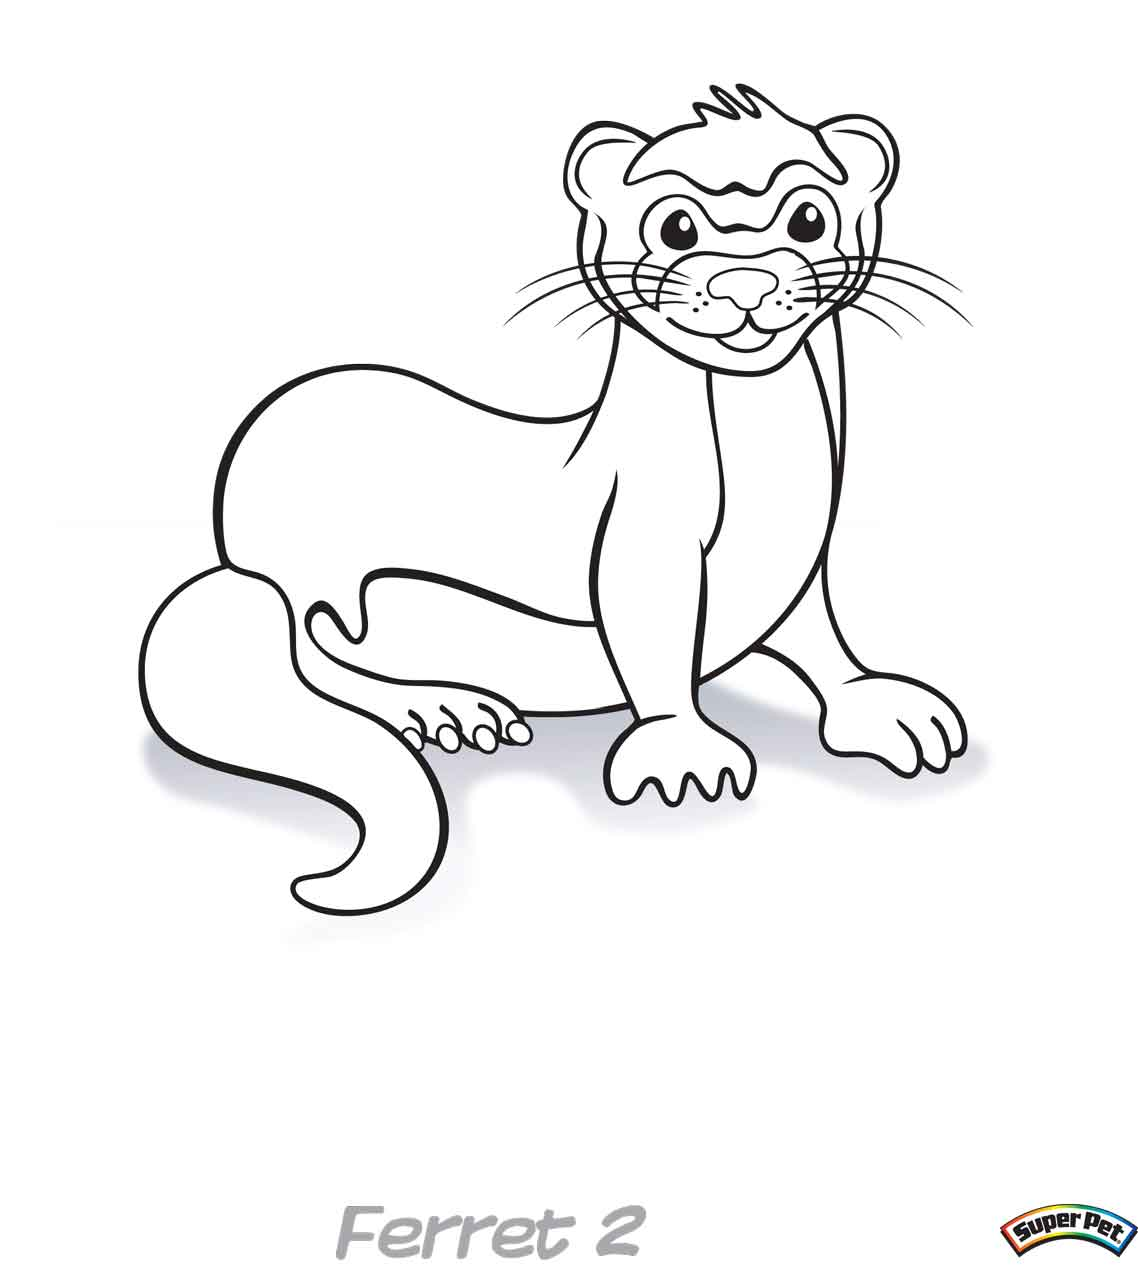 spongebob coloring pages to print alfa coloring pagesalfa ferret